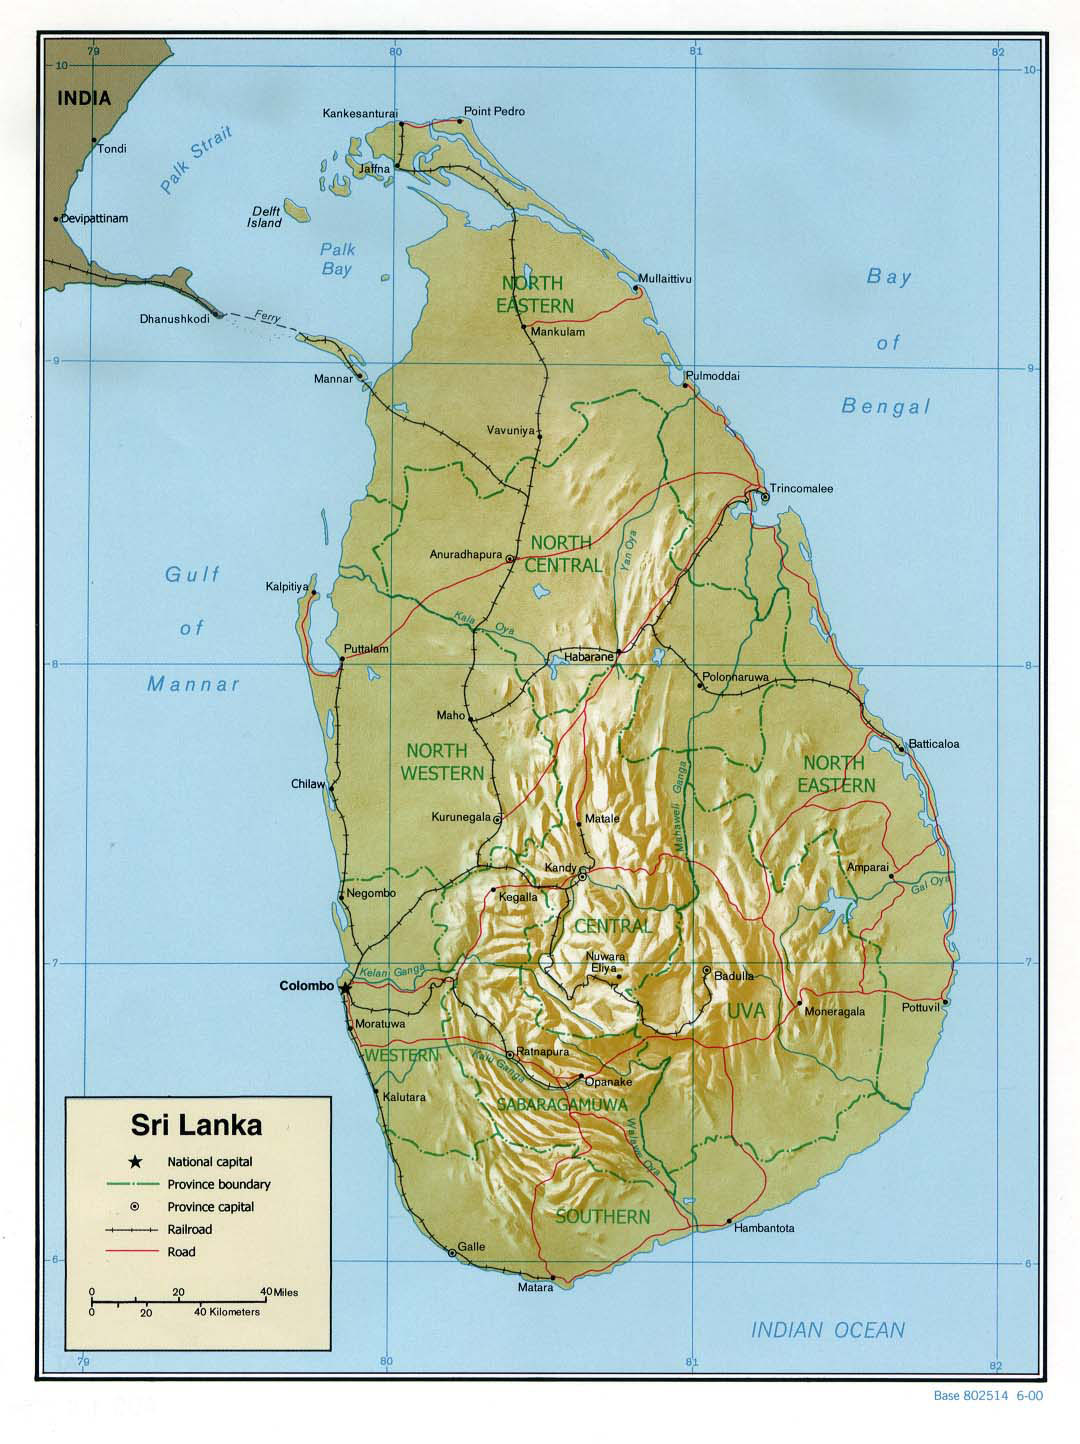 Sri Lanka Political Map.Large Detailed Relief And Political Map Of Sri Lanka Sri Lanka